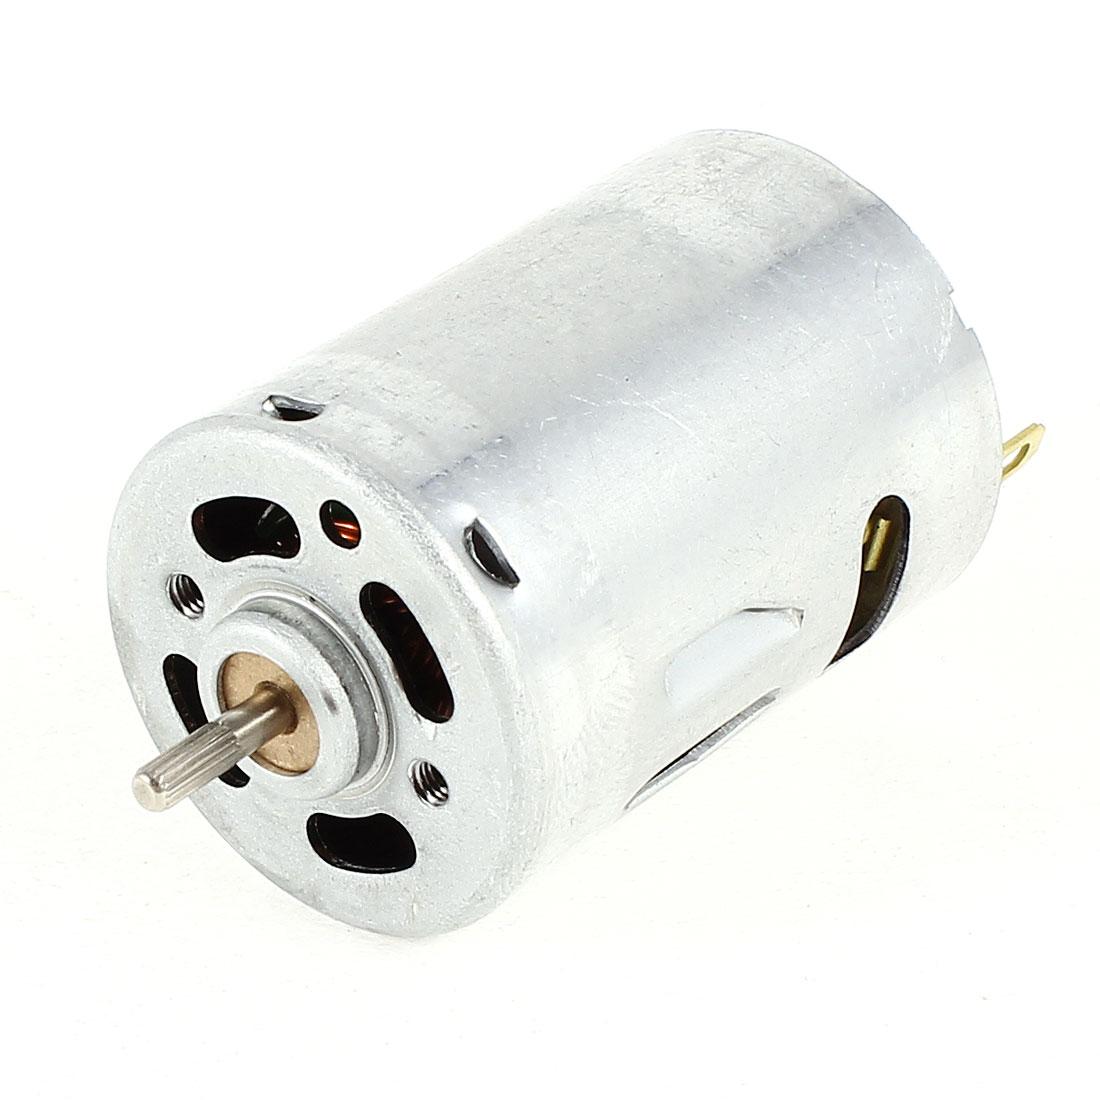 DC 6V 15000RPM Speed 2.3mm Knurled Shaft Cylinder Magnetic Micro Electric Motor